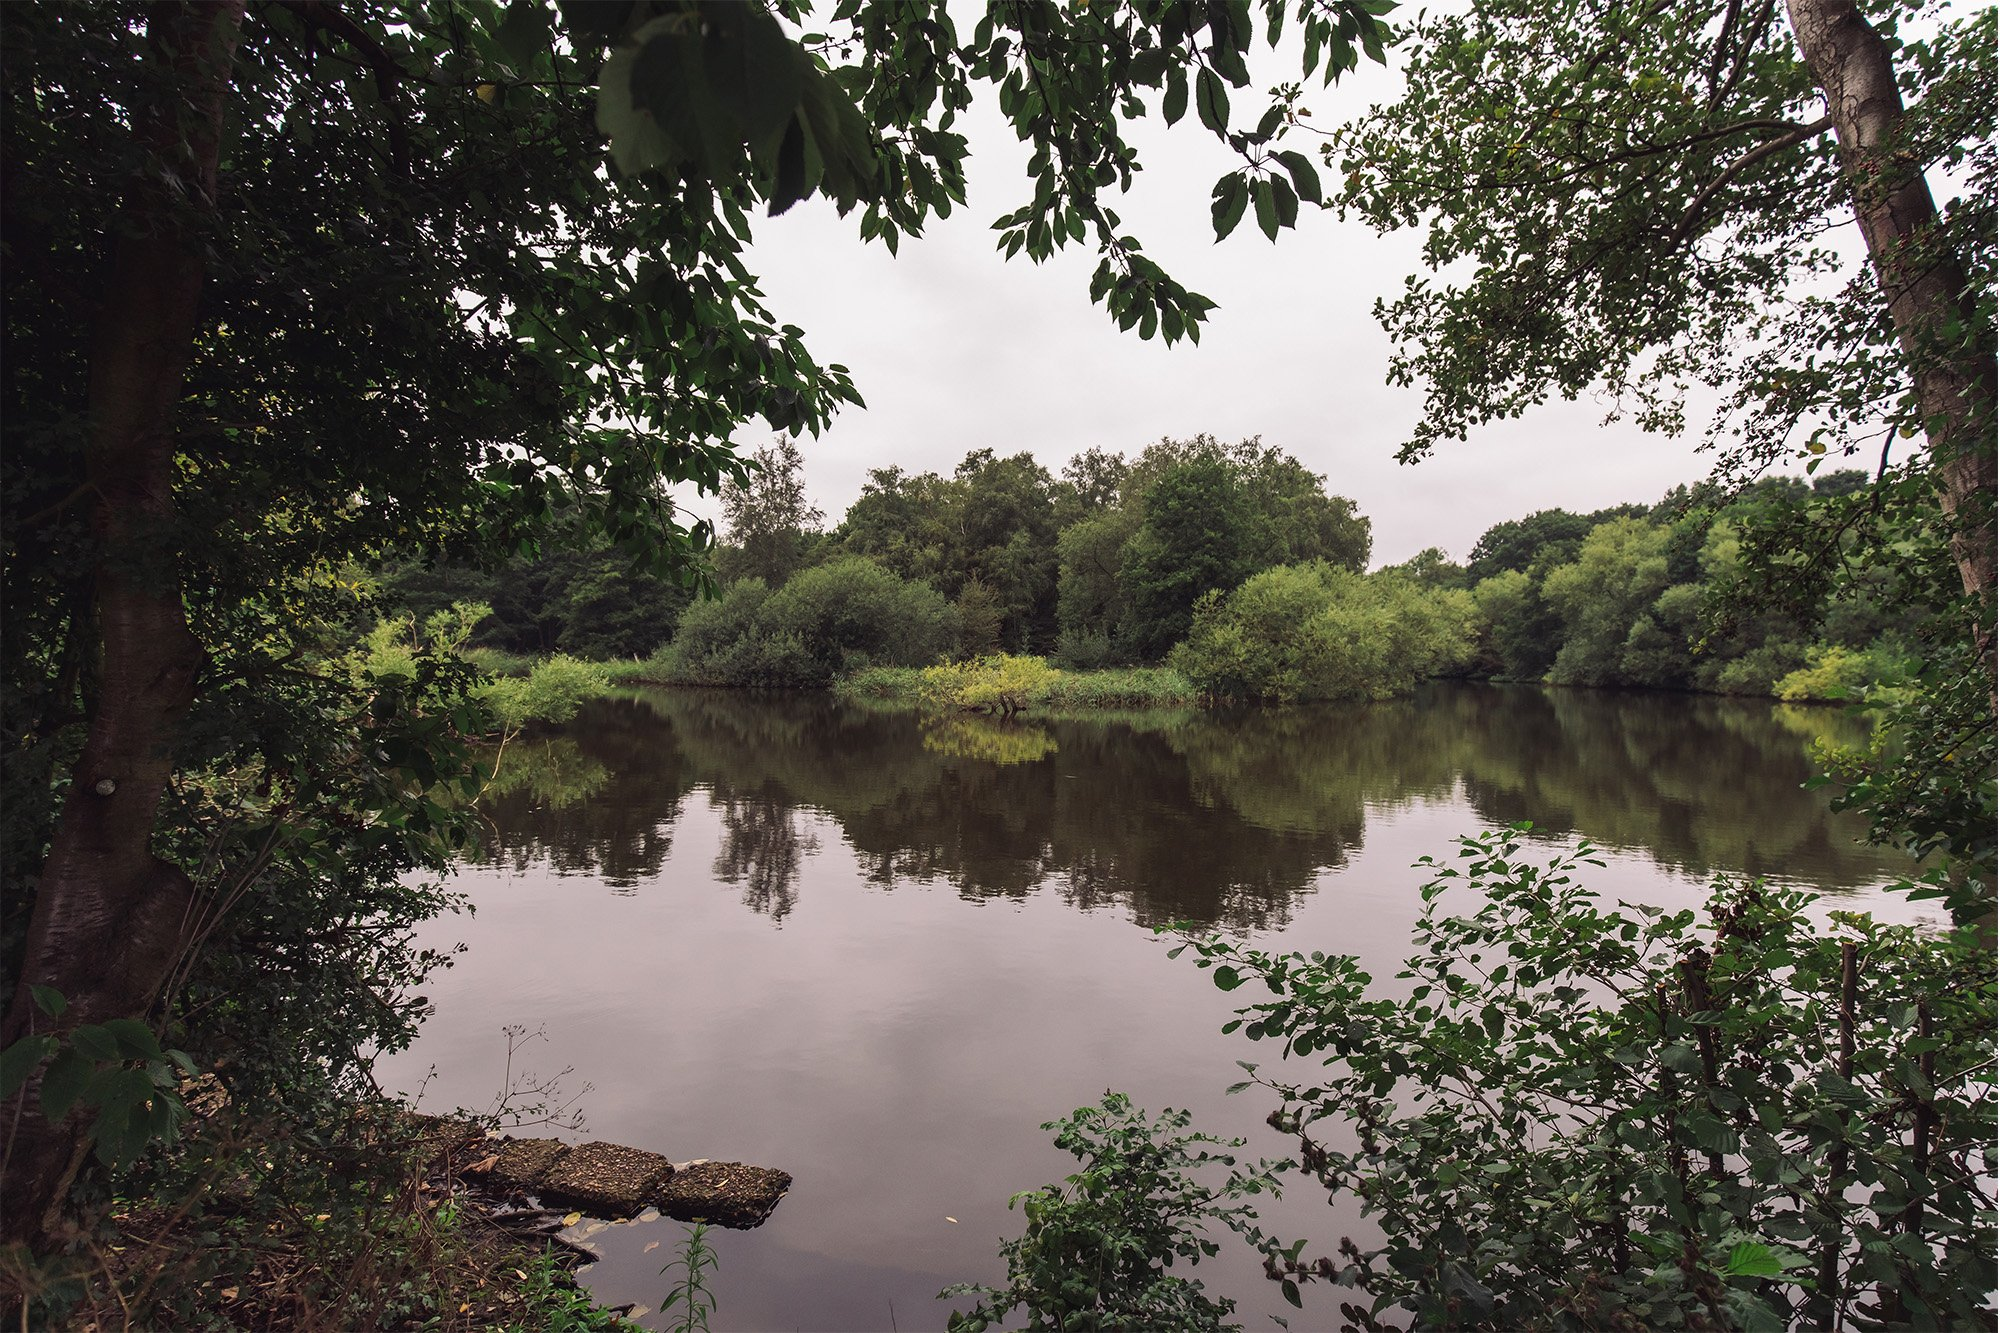 Testing the Sony A7R II – A lake on Hampstead Heath